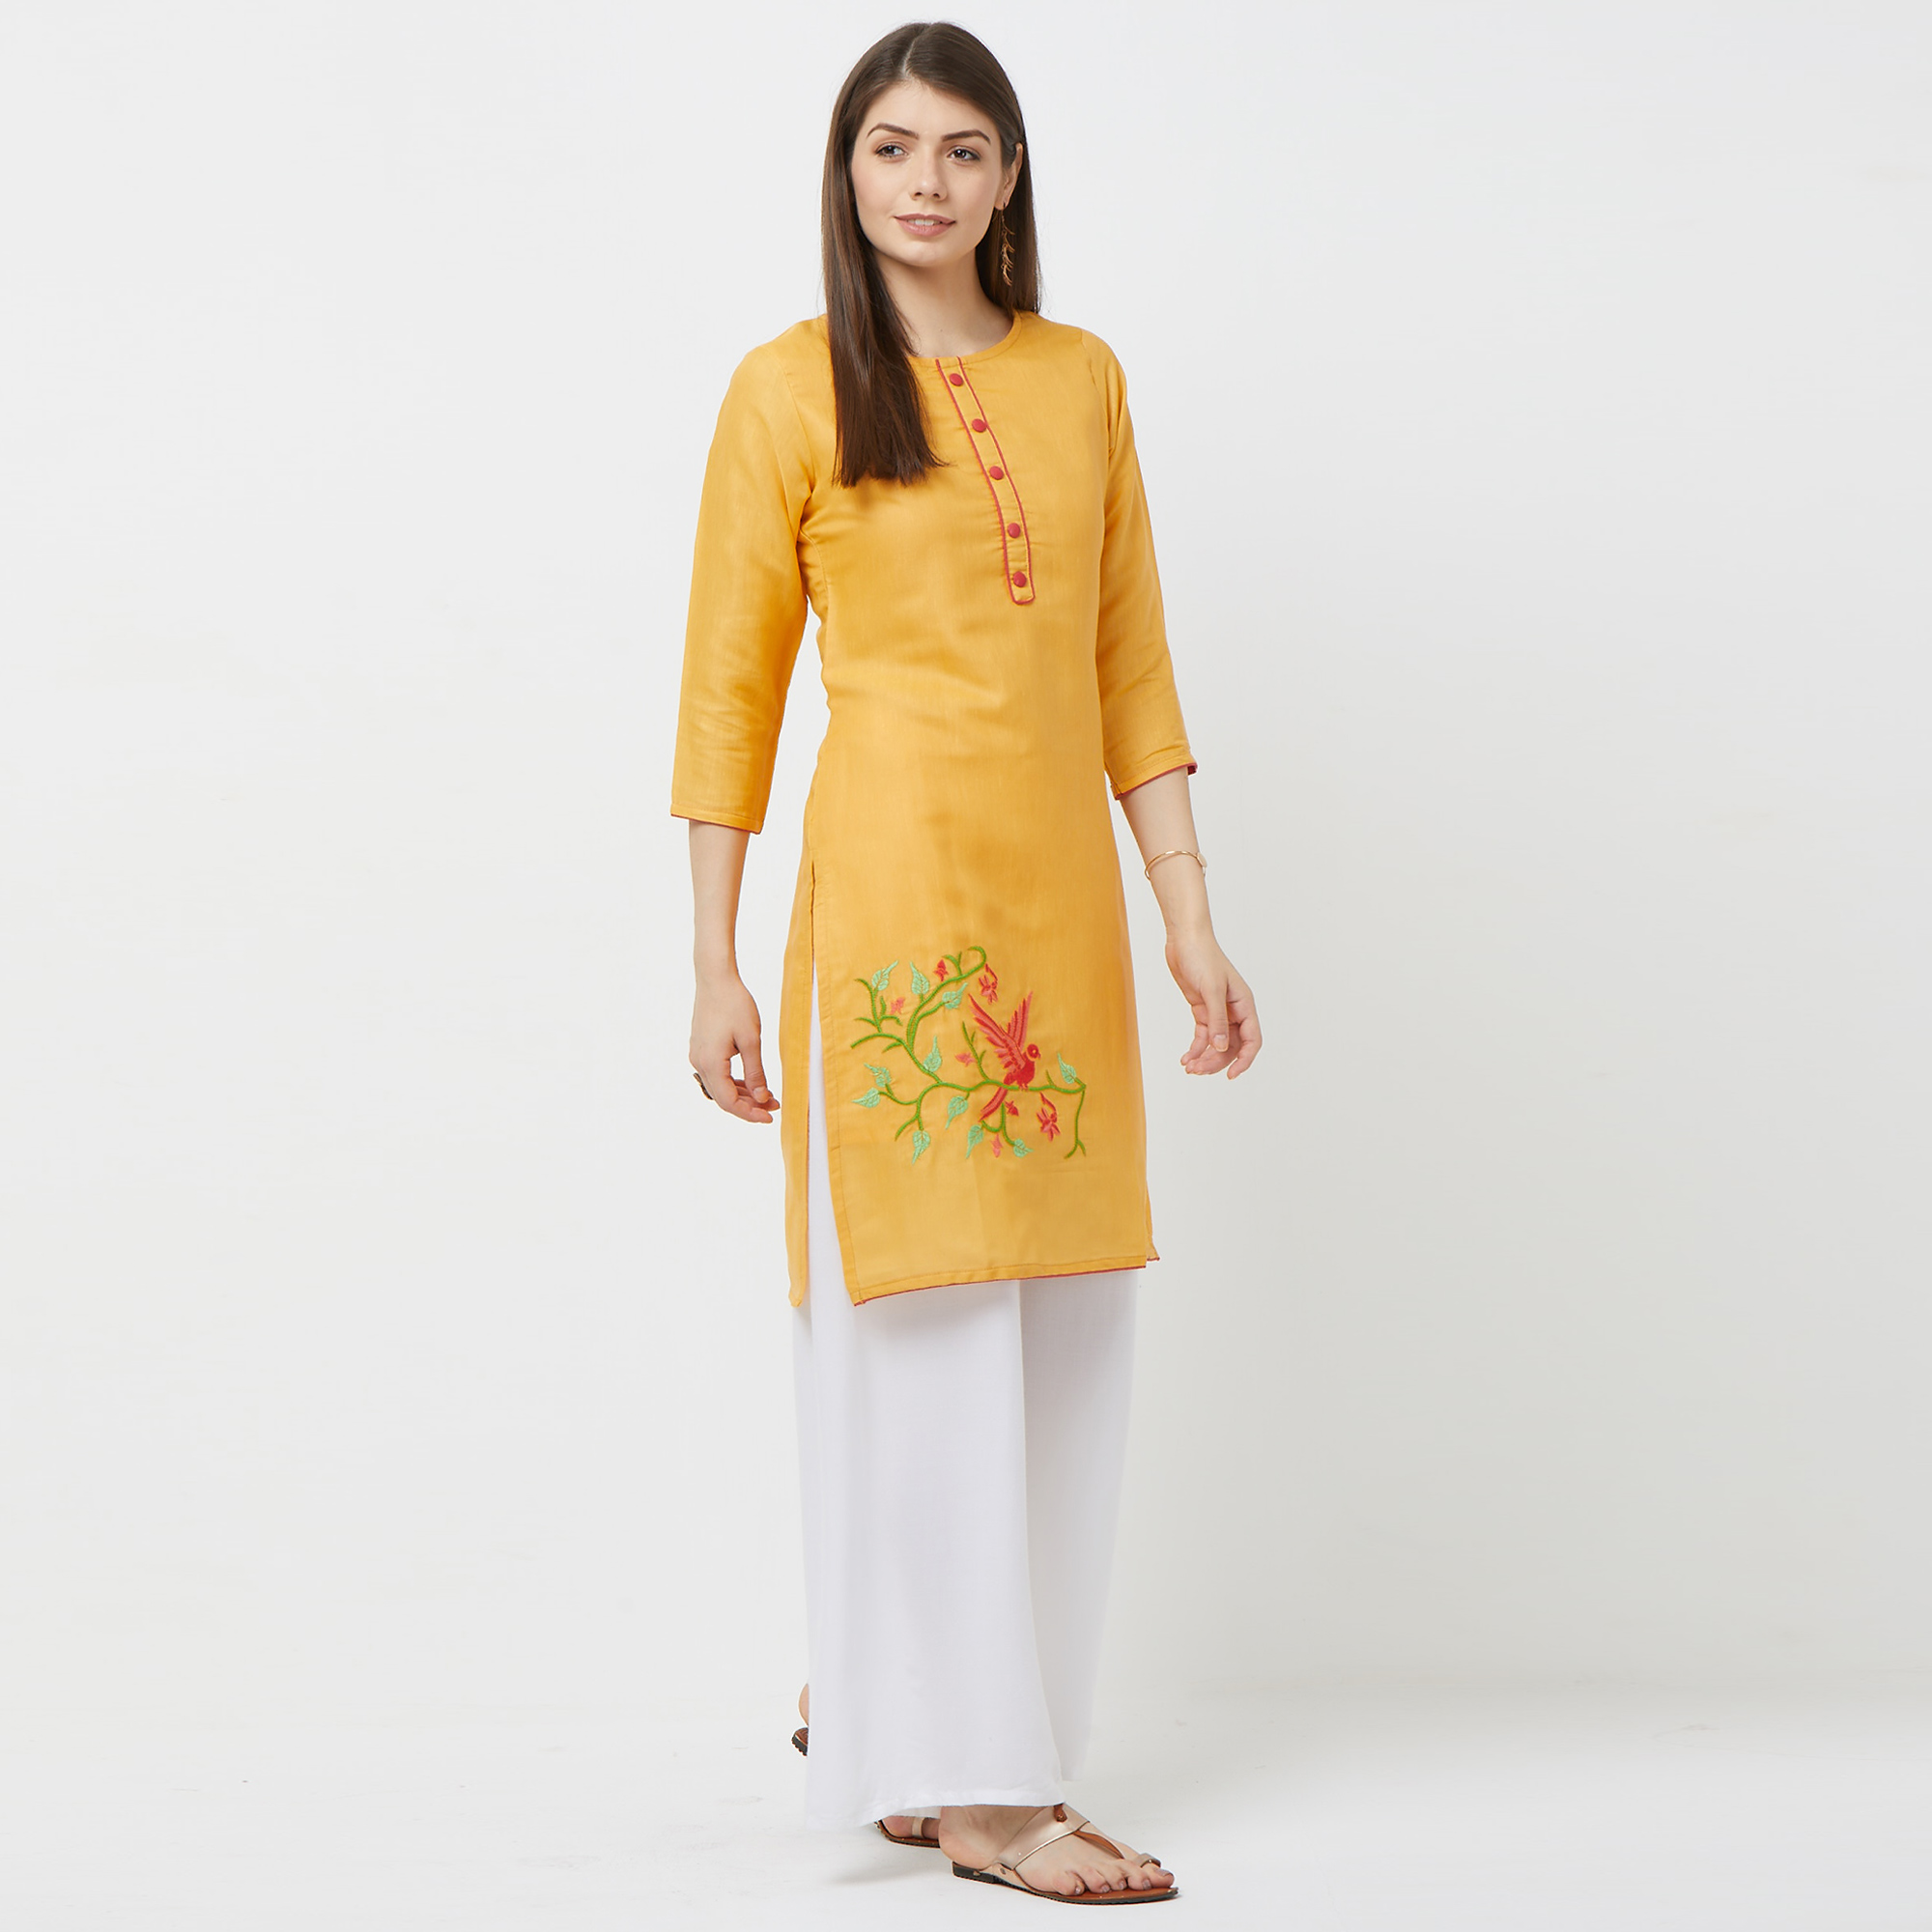 Groovy Yellow Colored Casual Embroidered Cotton Kurti